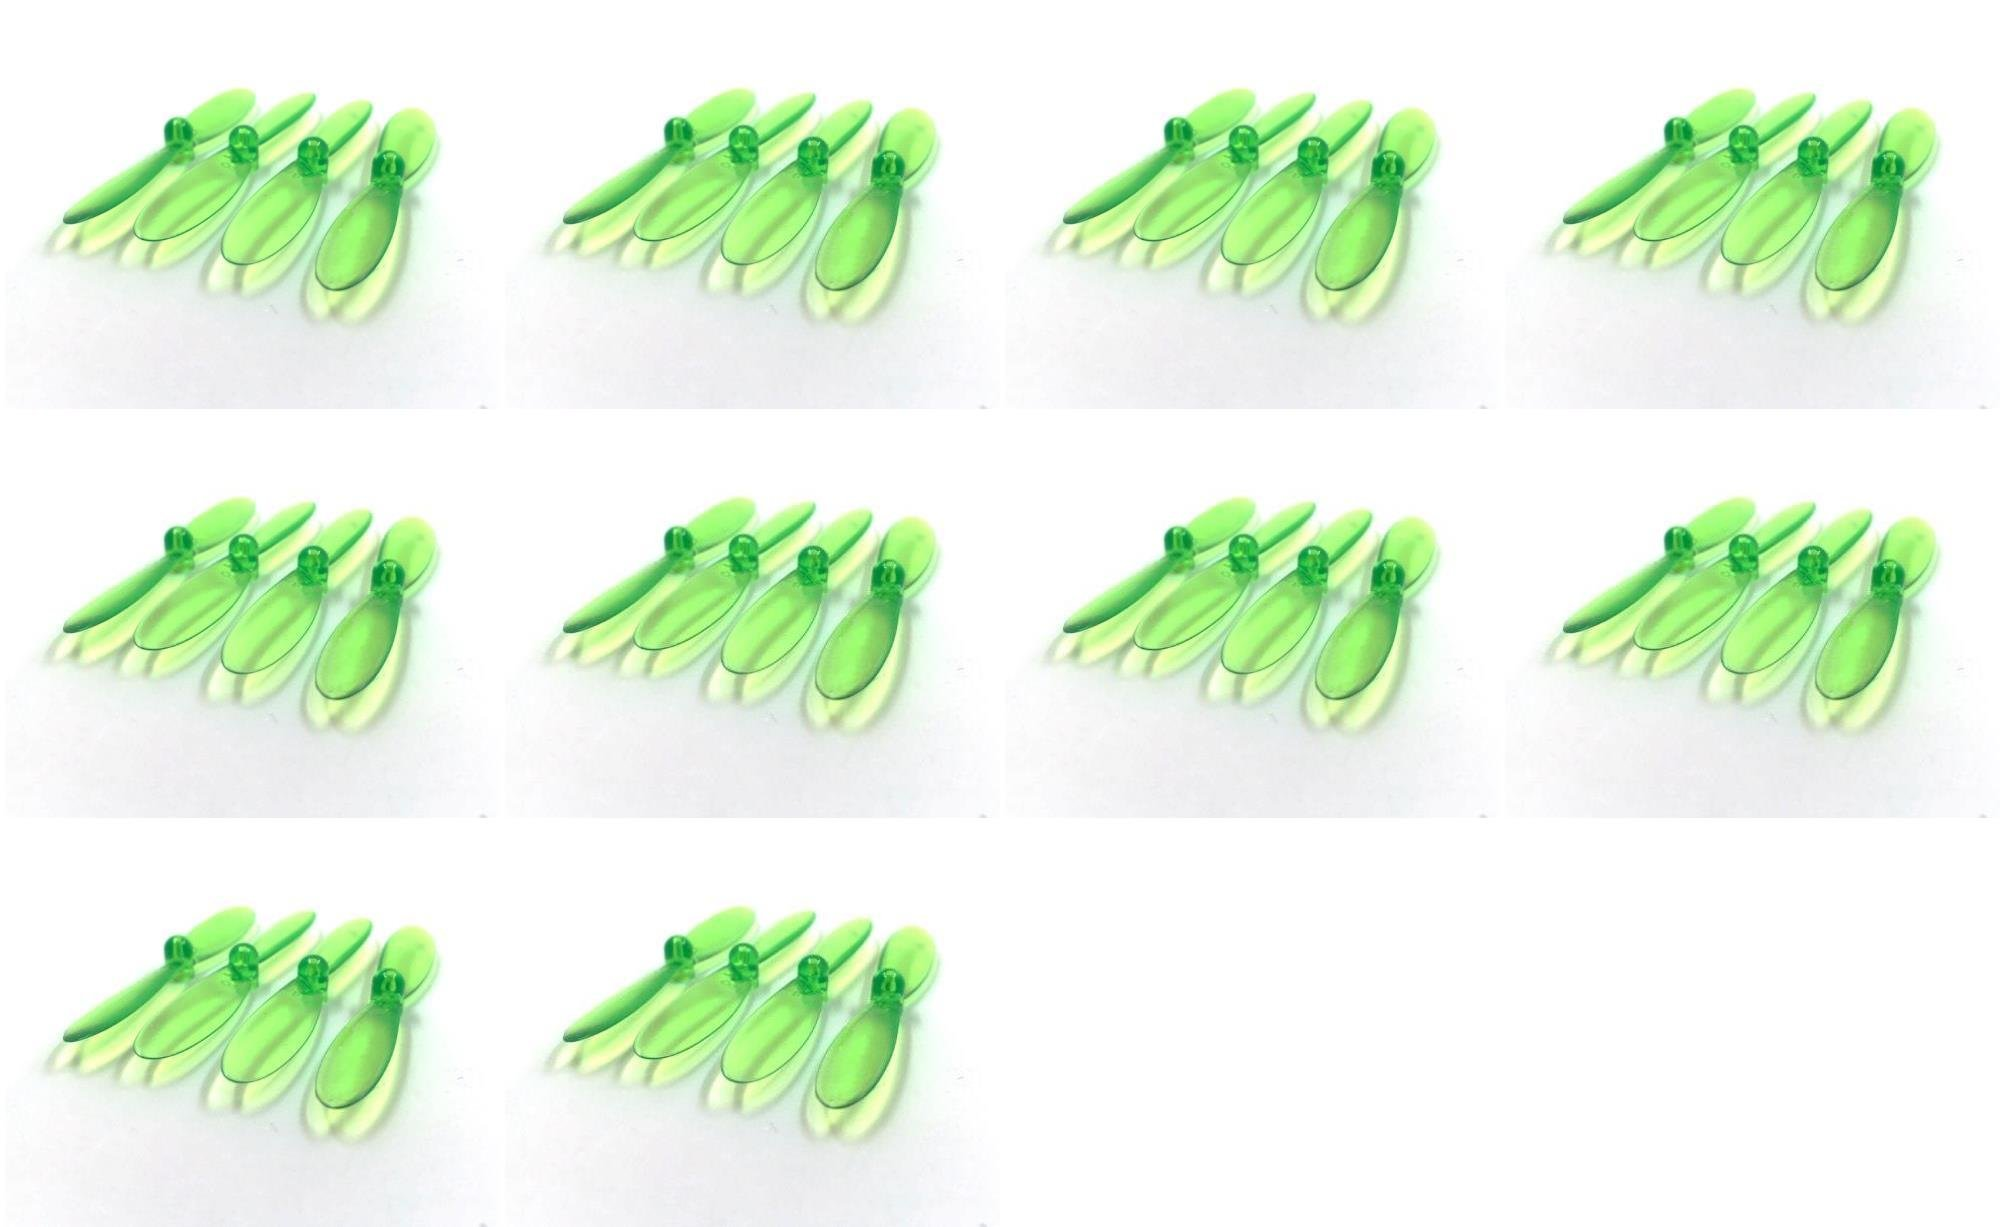 10 x Quantity of X-DART Quadcopter Transparent Clear Green Propeller Blades Props Rotor Set 55mm Factory Units